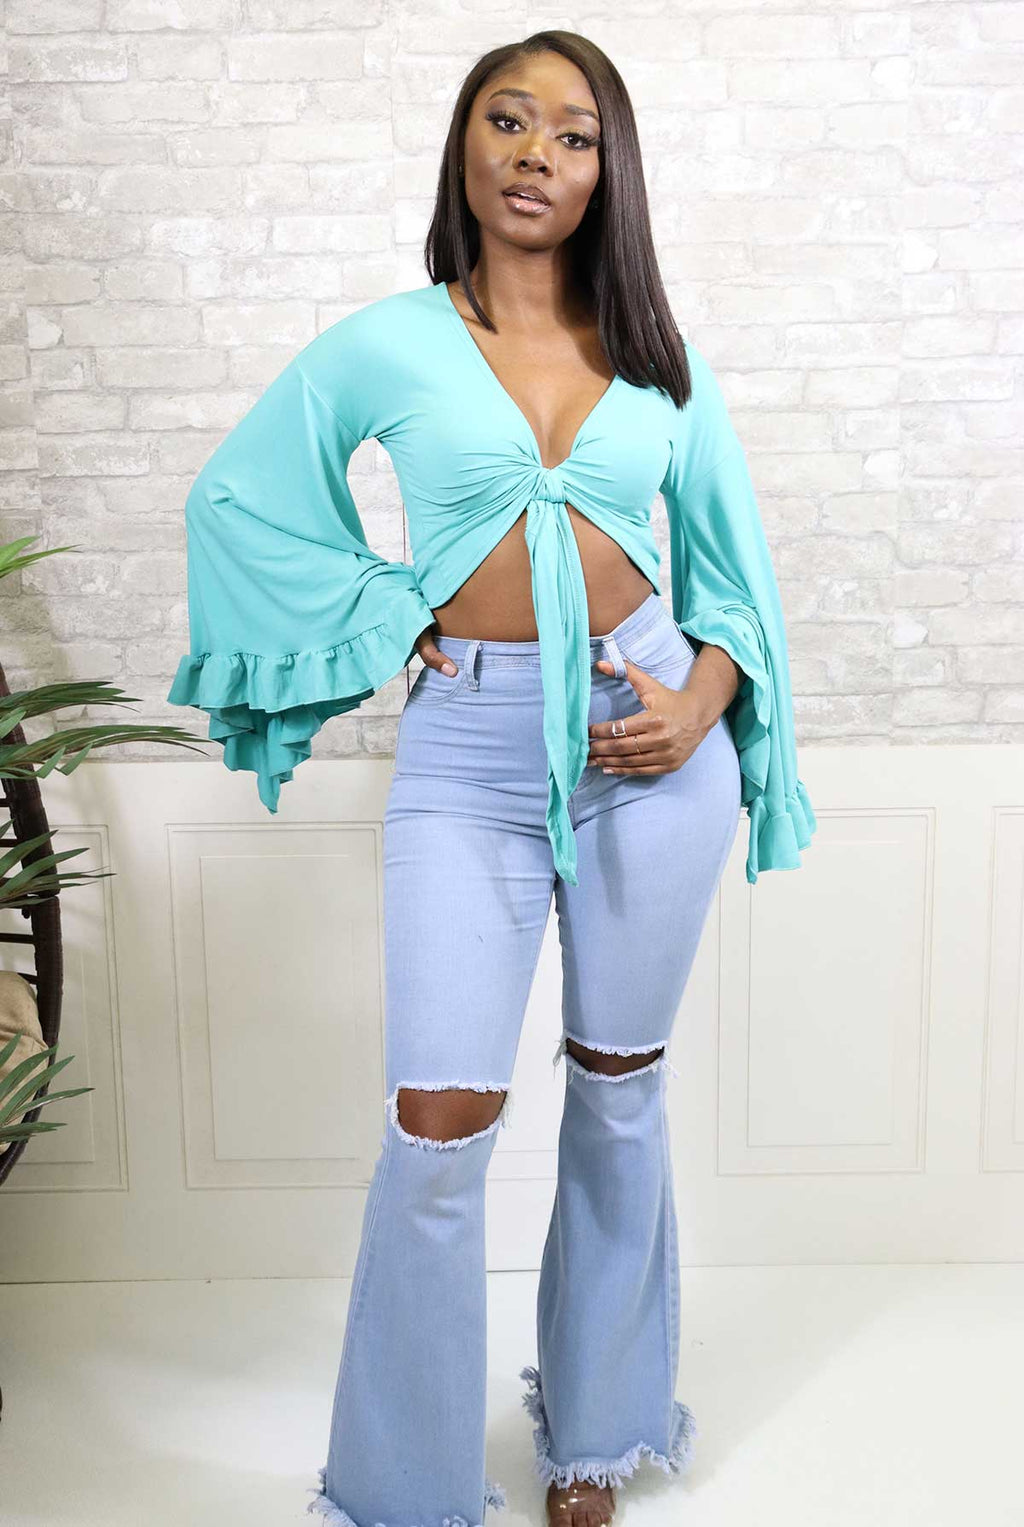 ANGELIC SPRING FLARE BLOUSE - Spice Boutique